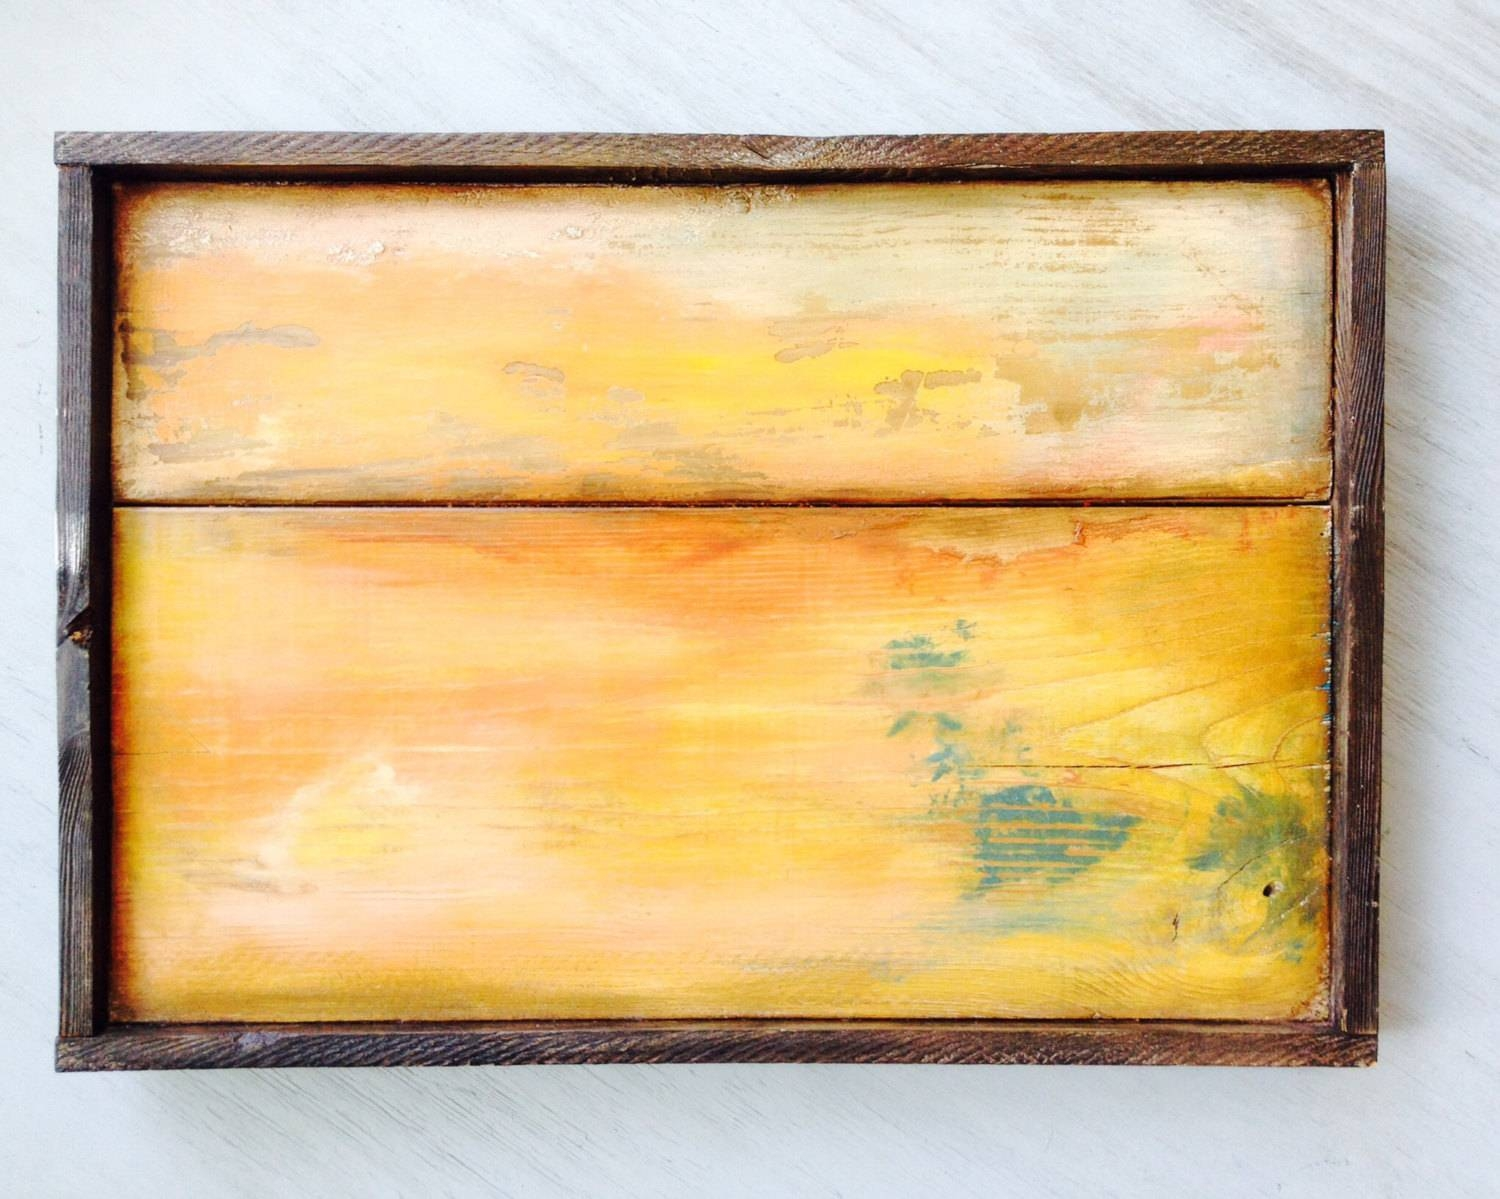 Distressed Wood Boards Reclaimed Wood Wall Art Solid Wood Inside Most Current Yellow And Blue Wall Art (View 16 of 20)